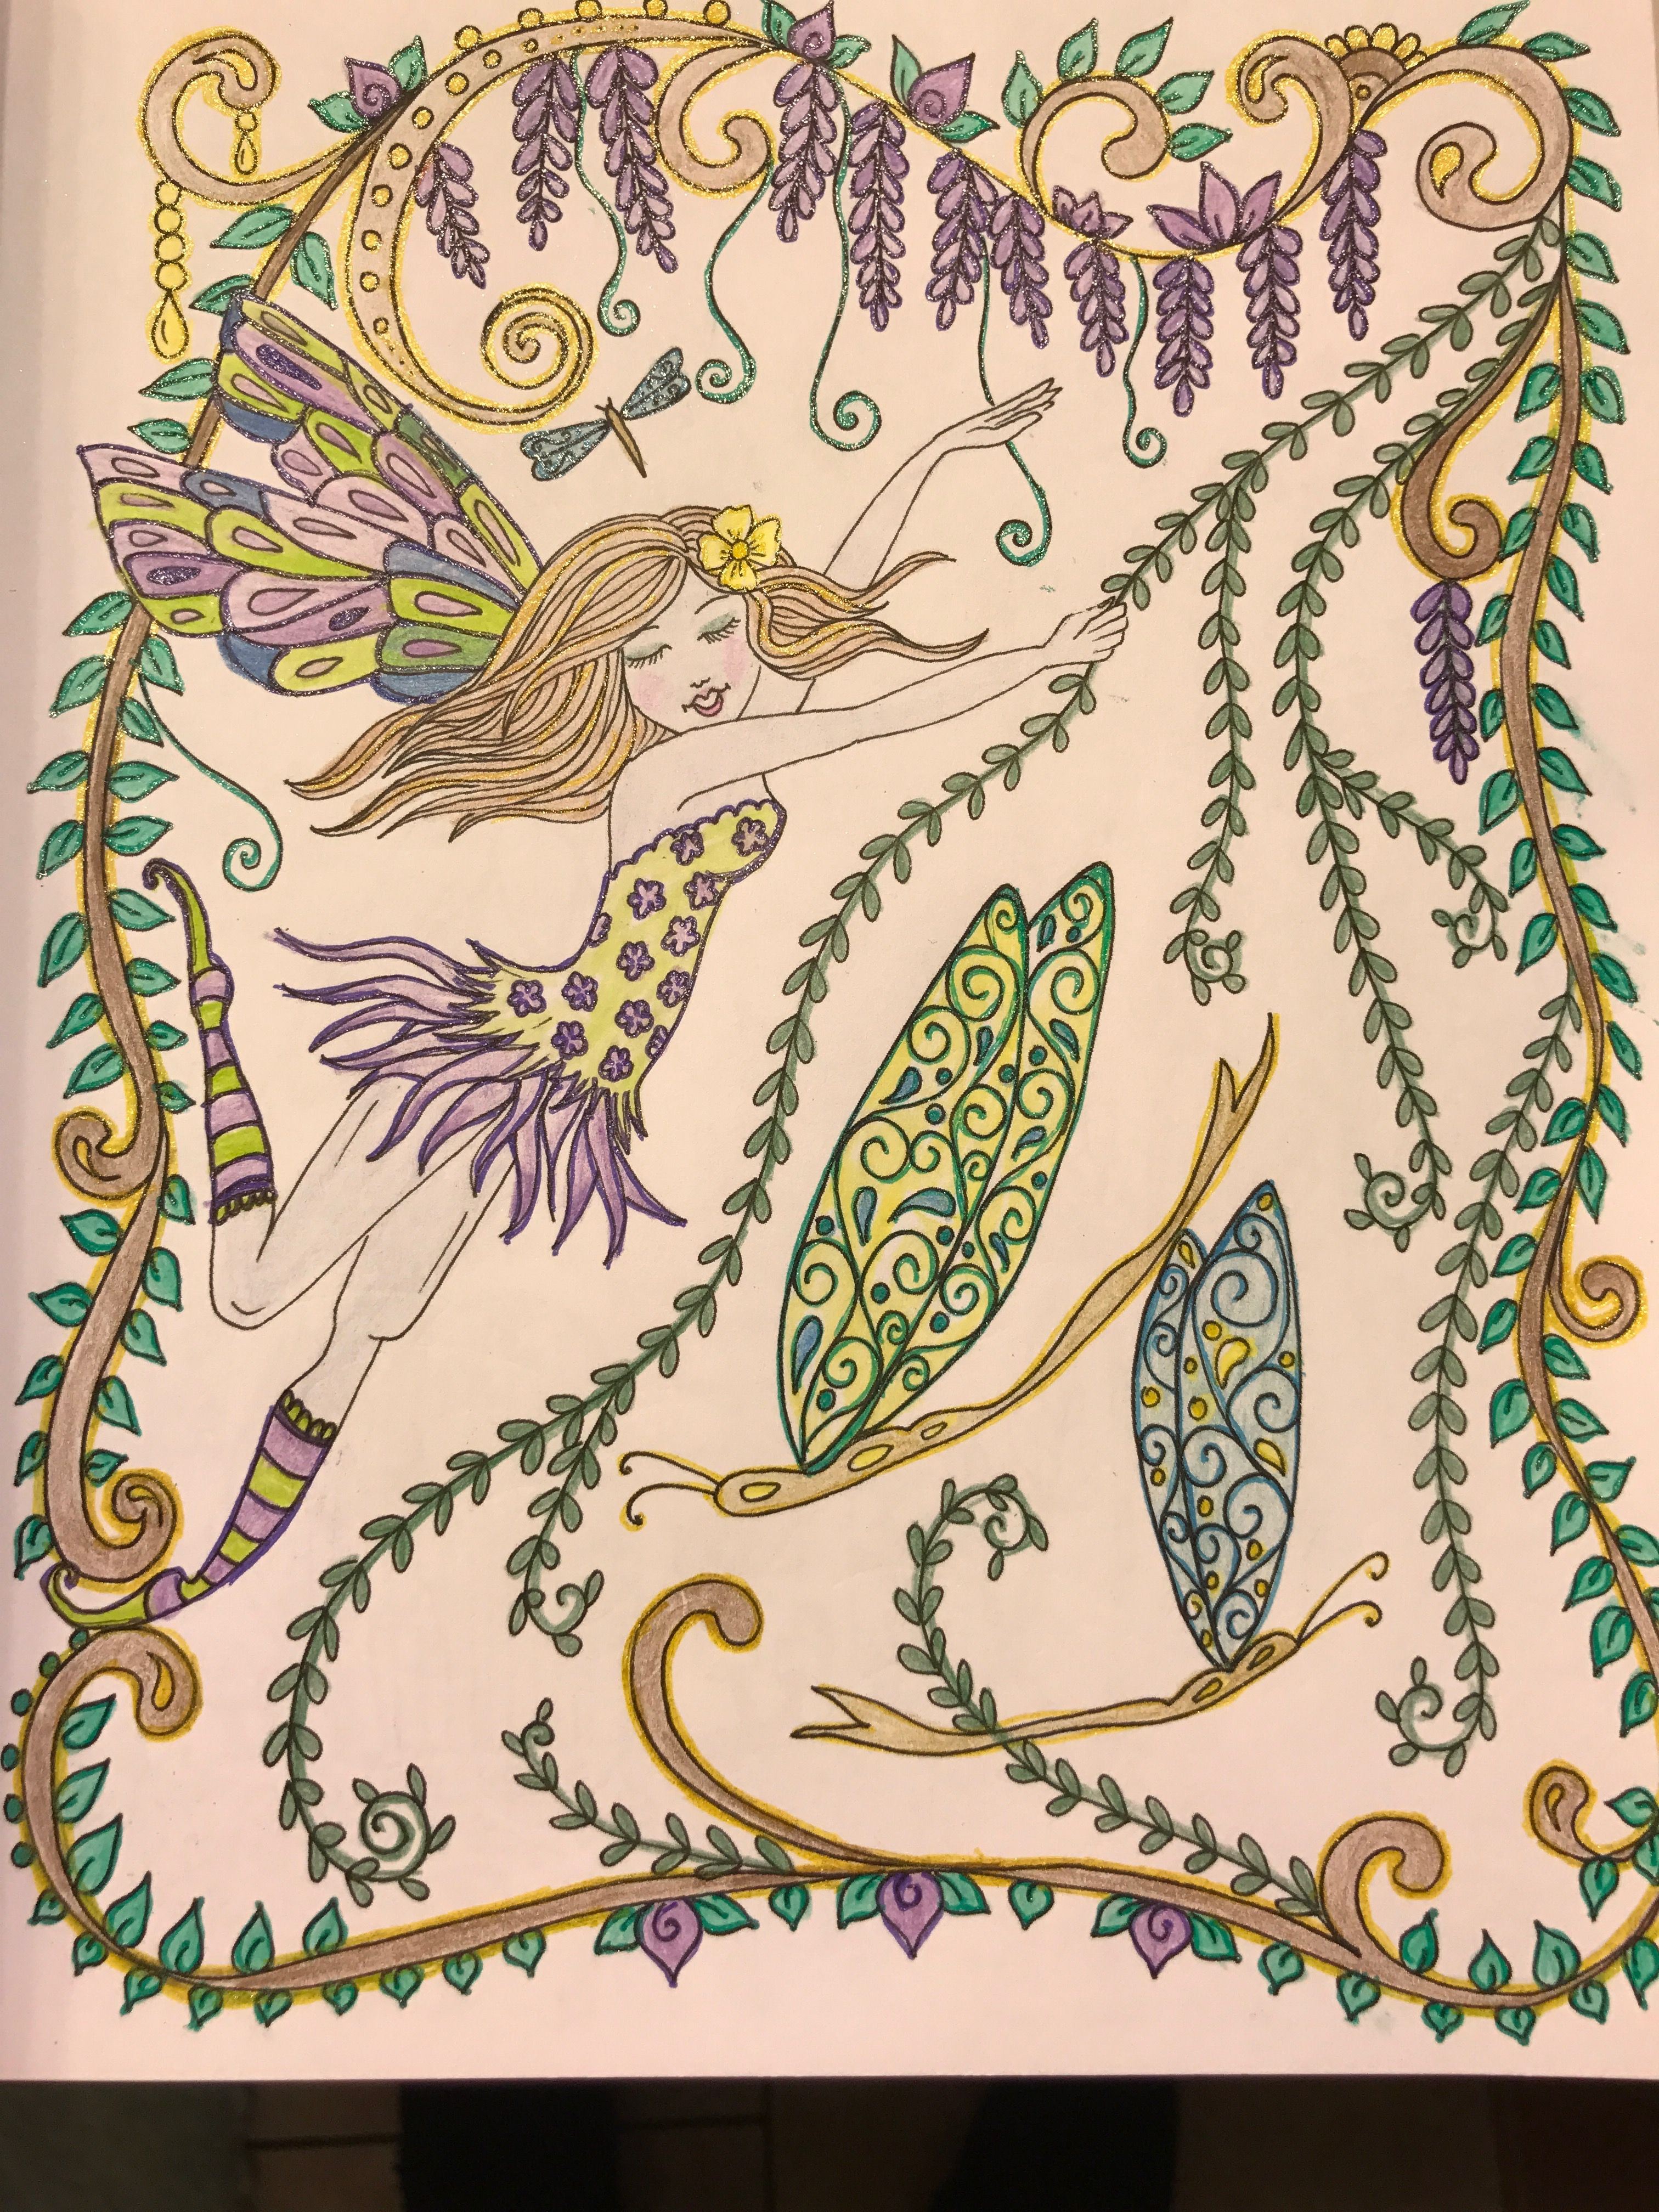 Frozen Coloring Pages Momjunction : Pin by alice stoddard on my coloring pages